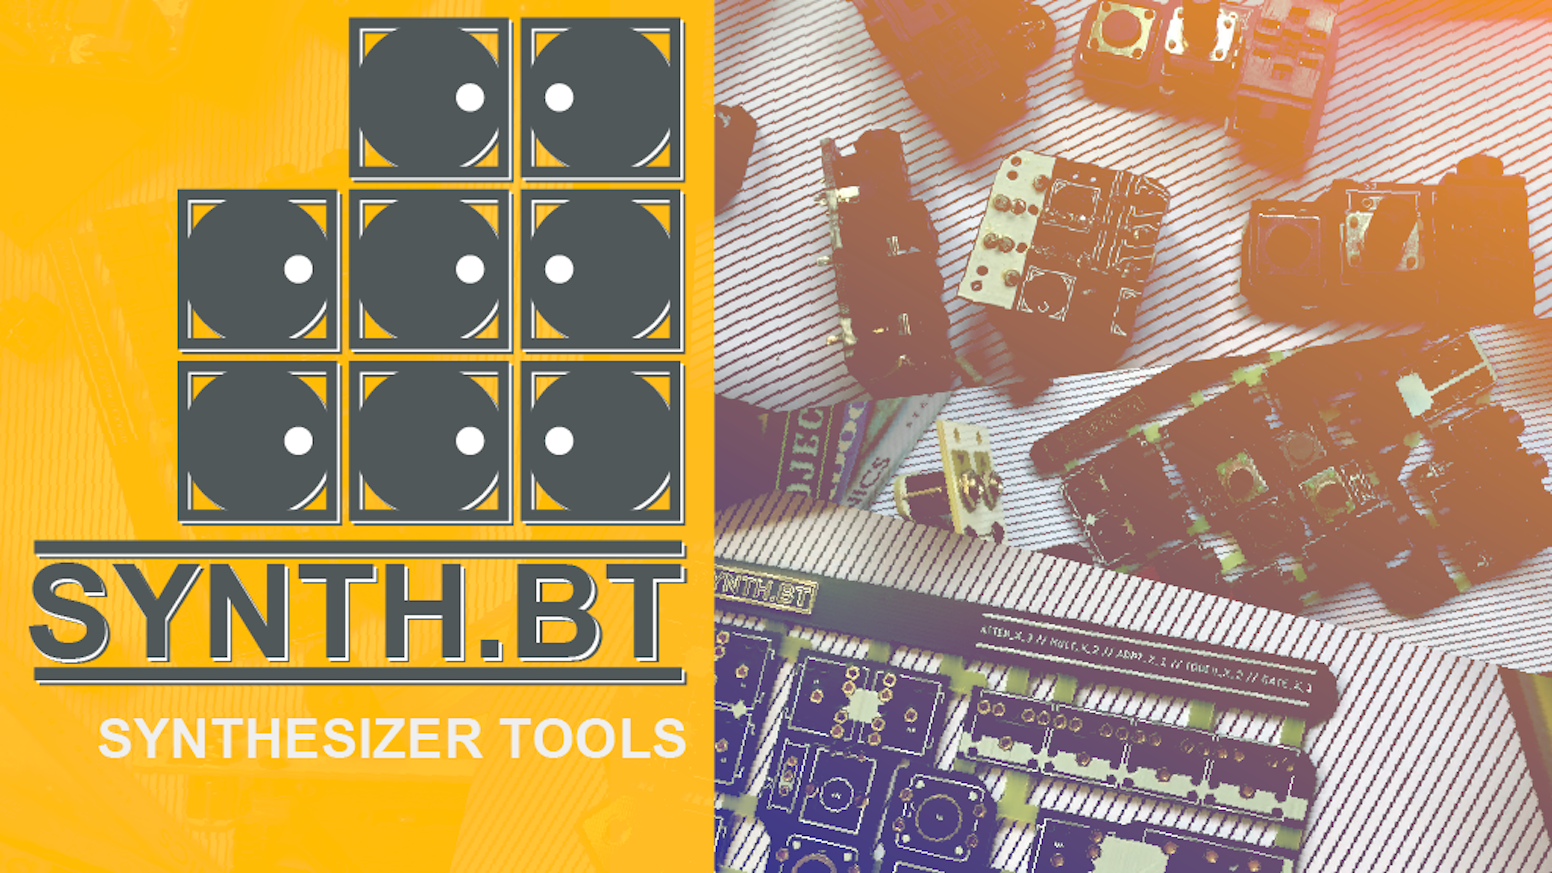 Good-looking passive synthesizer tools for your modular setup